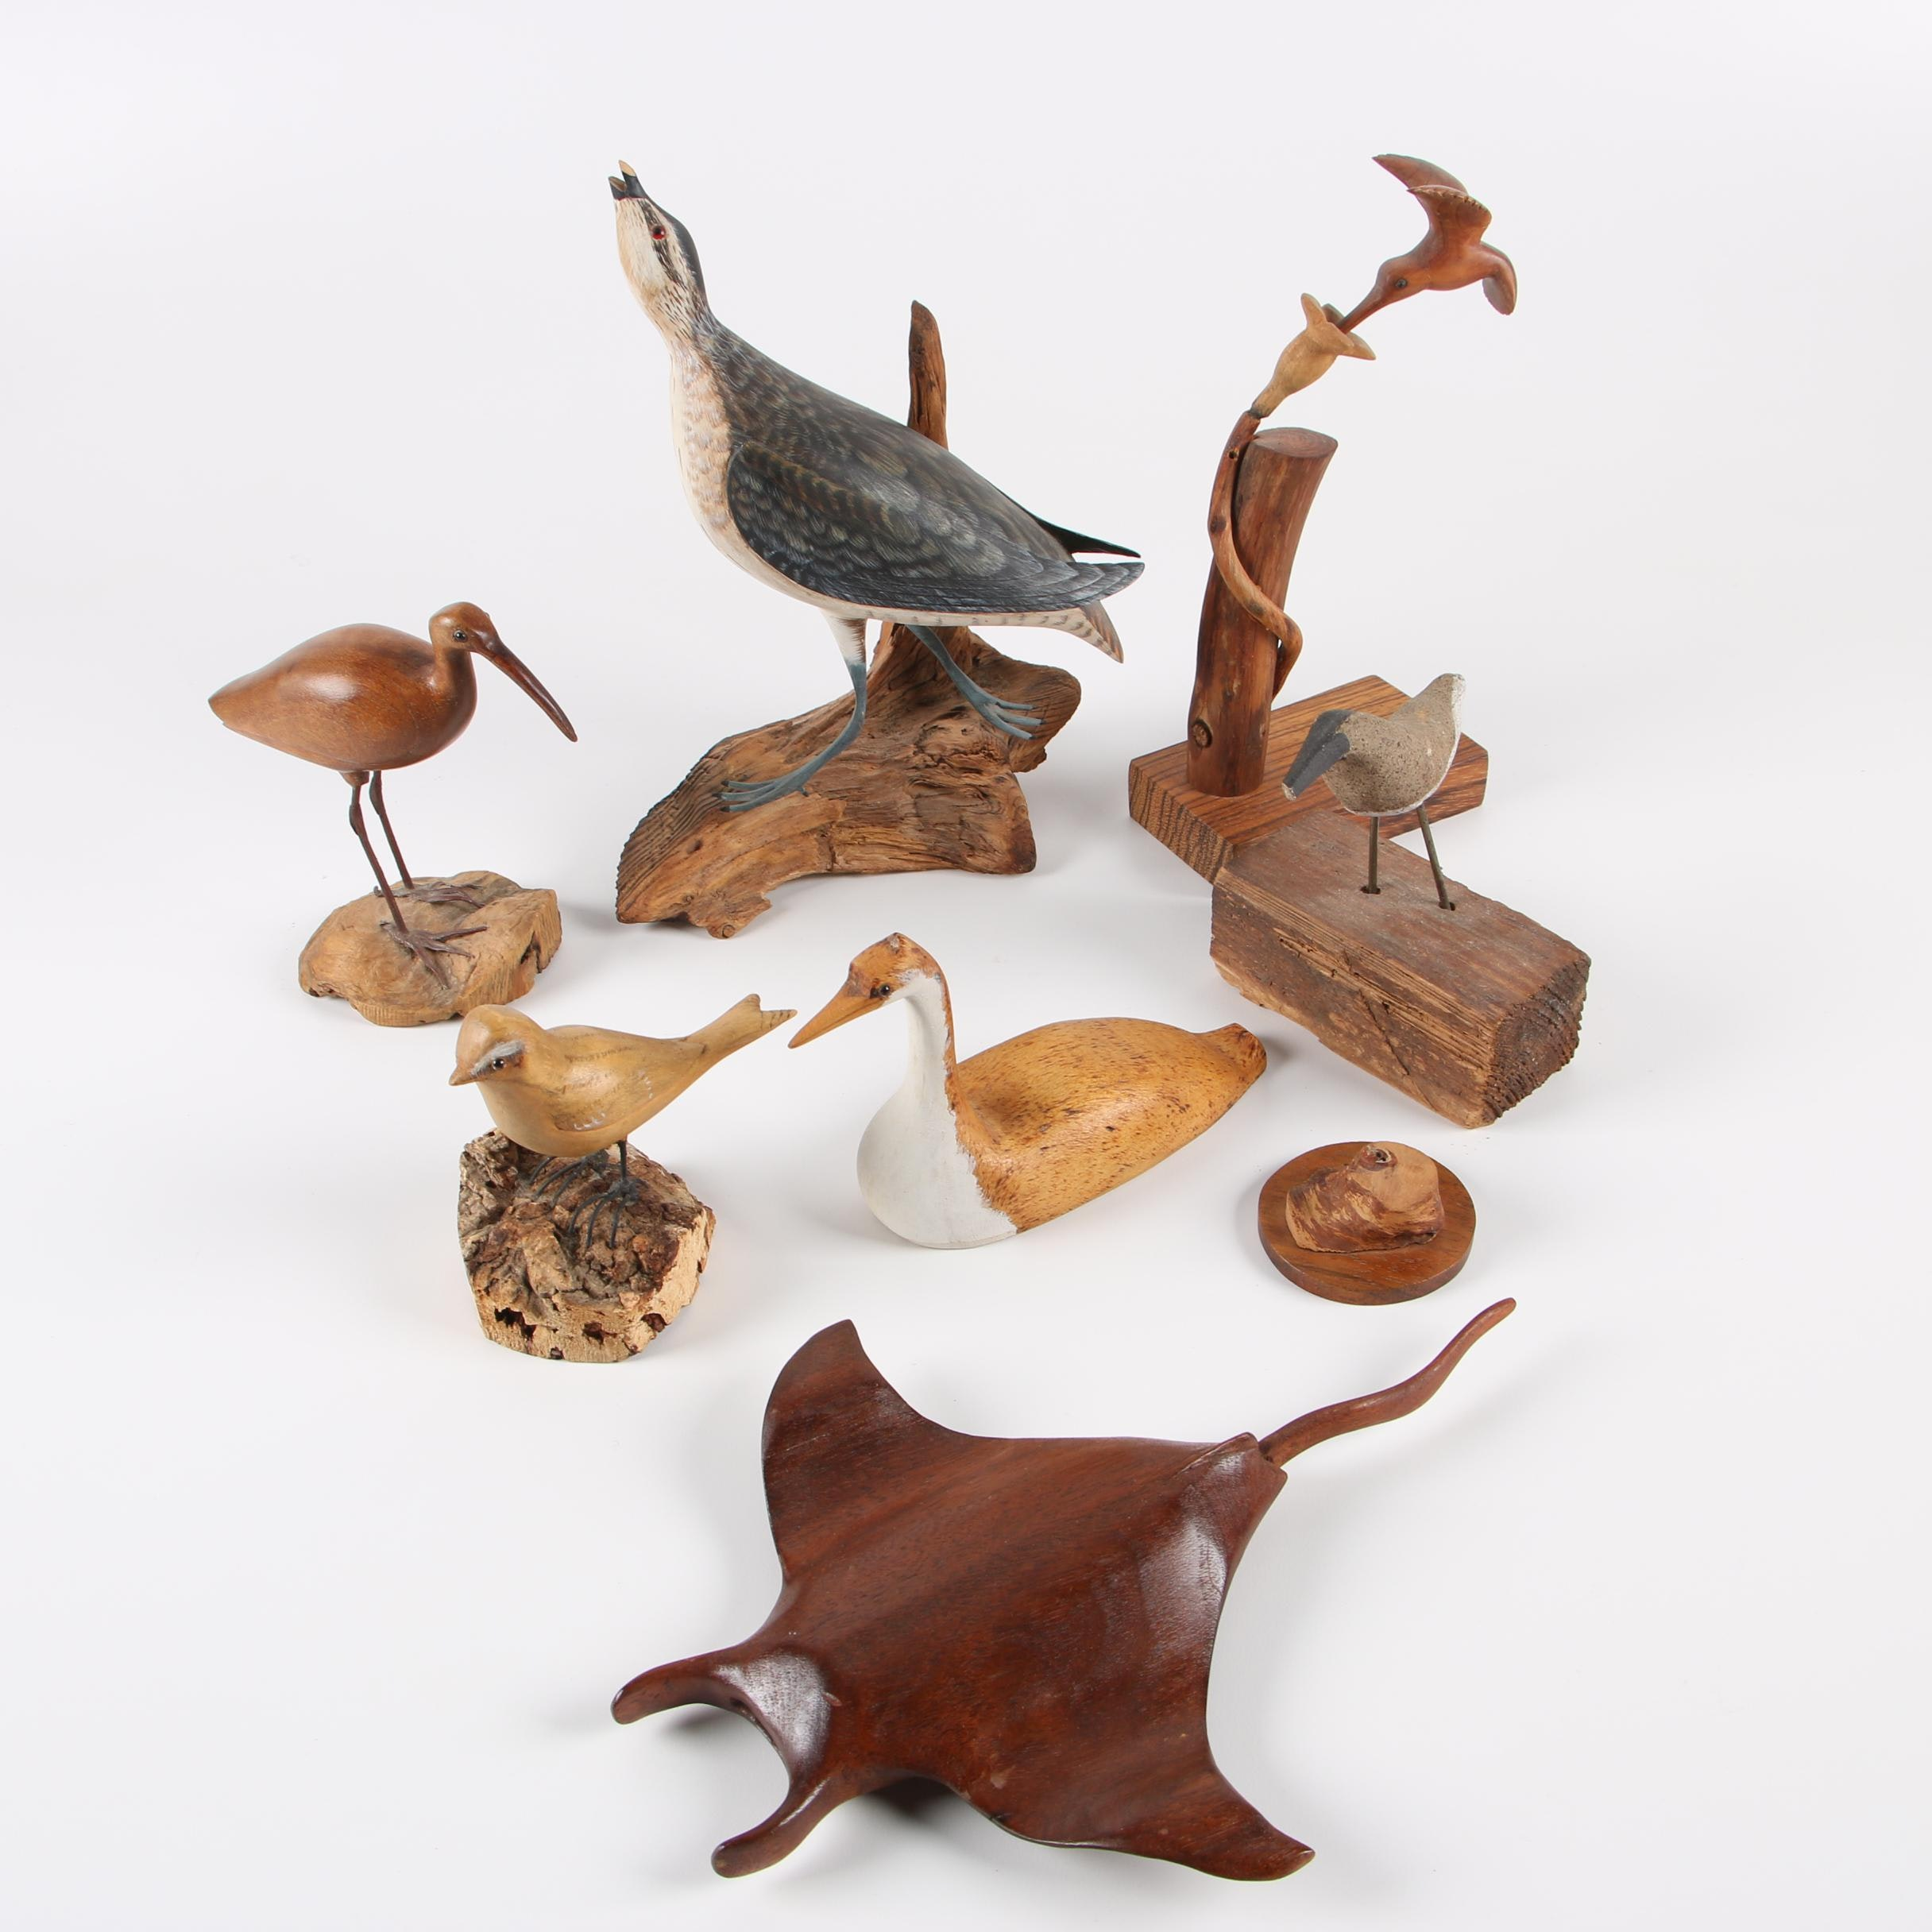 Bly Signed Carved Wooden Bird and Stingray Figurines